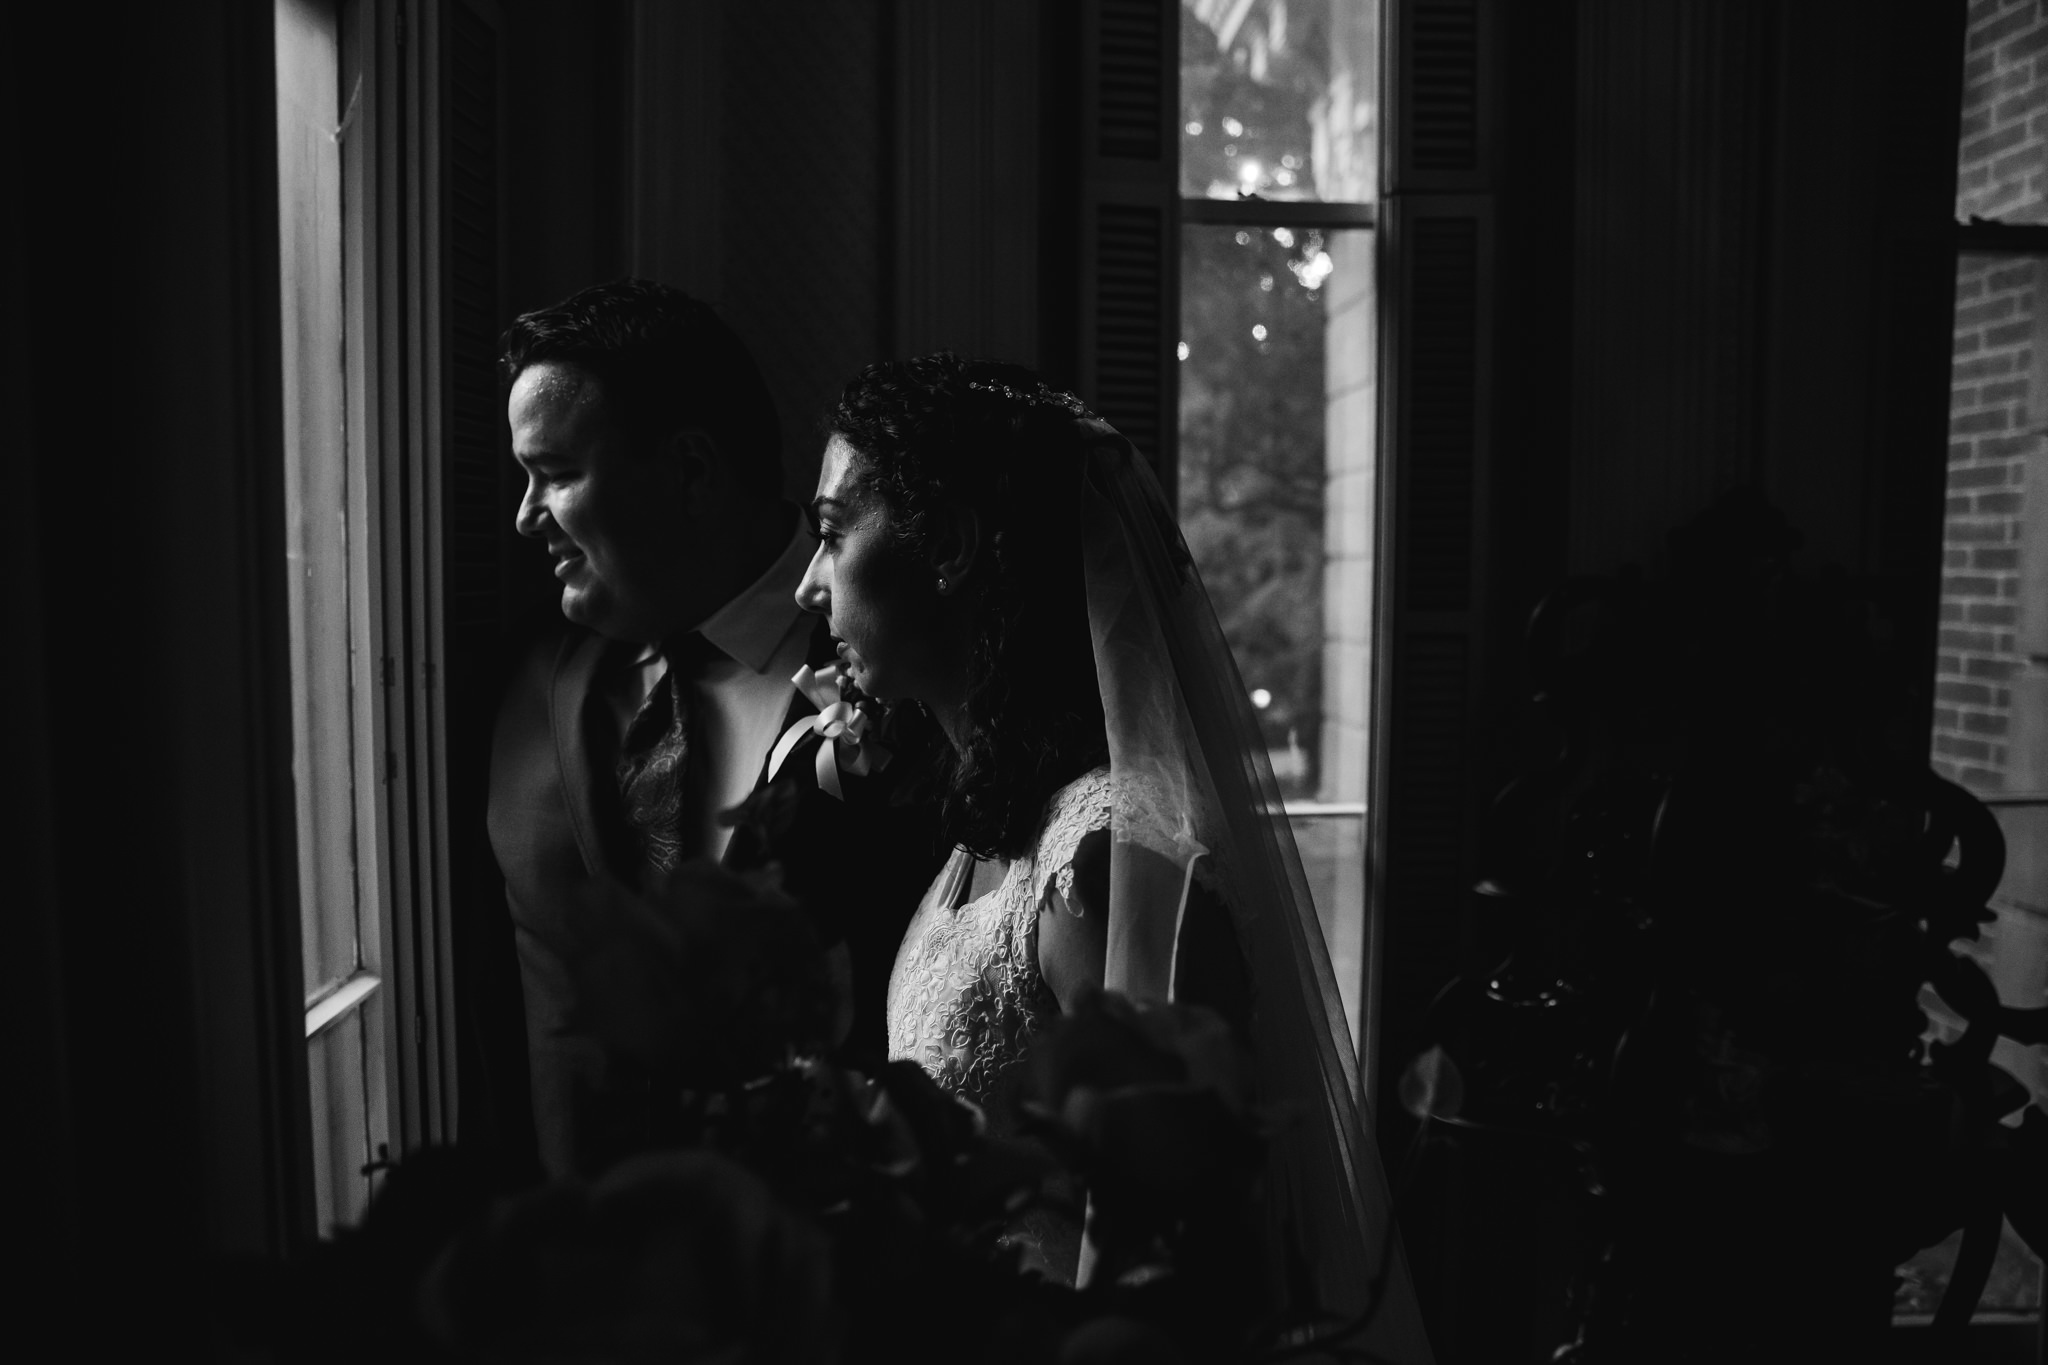 memphis-engagement-photographer-thewarmtharoundyou-33.jpg